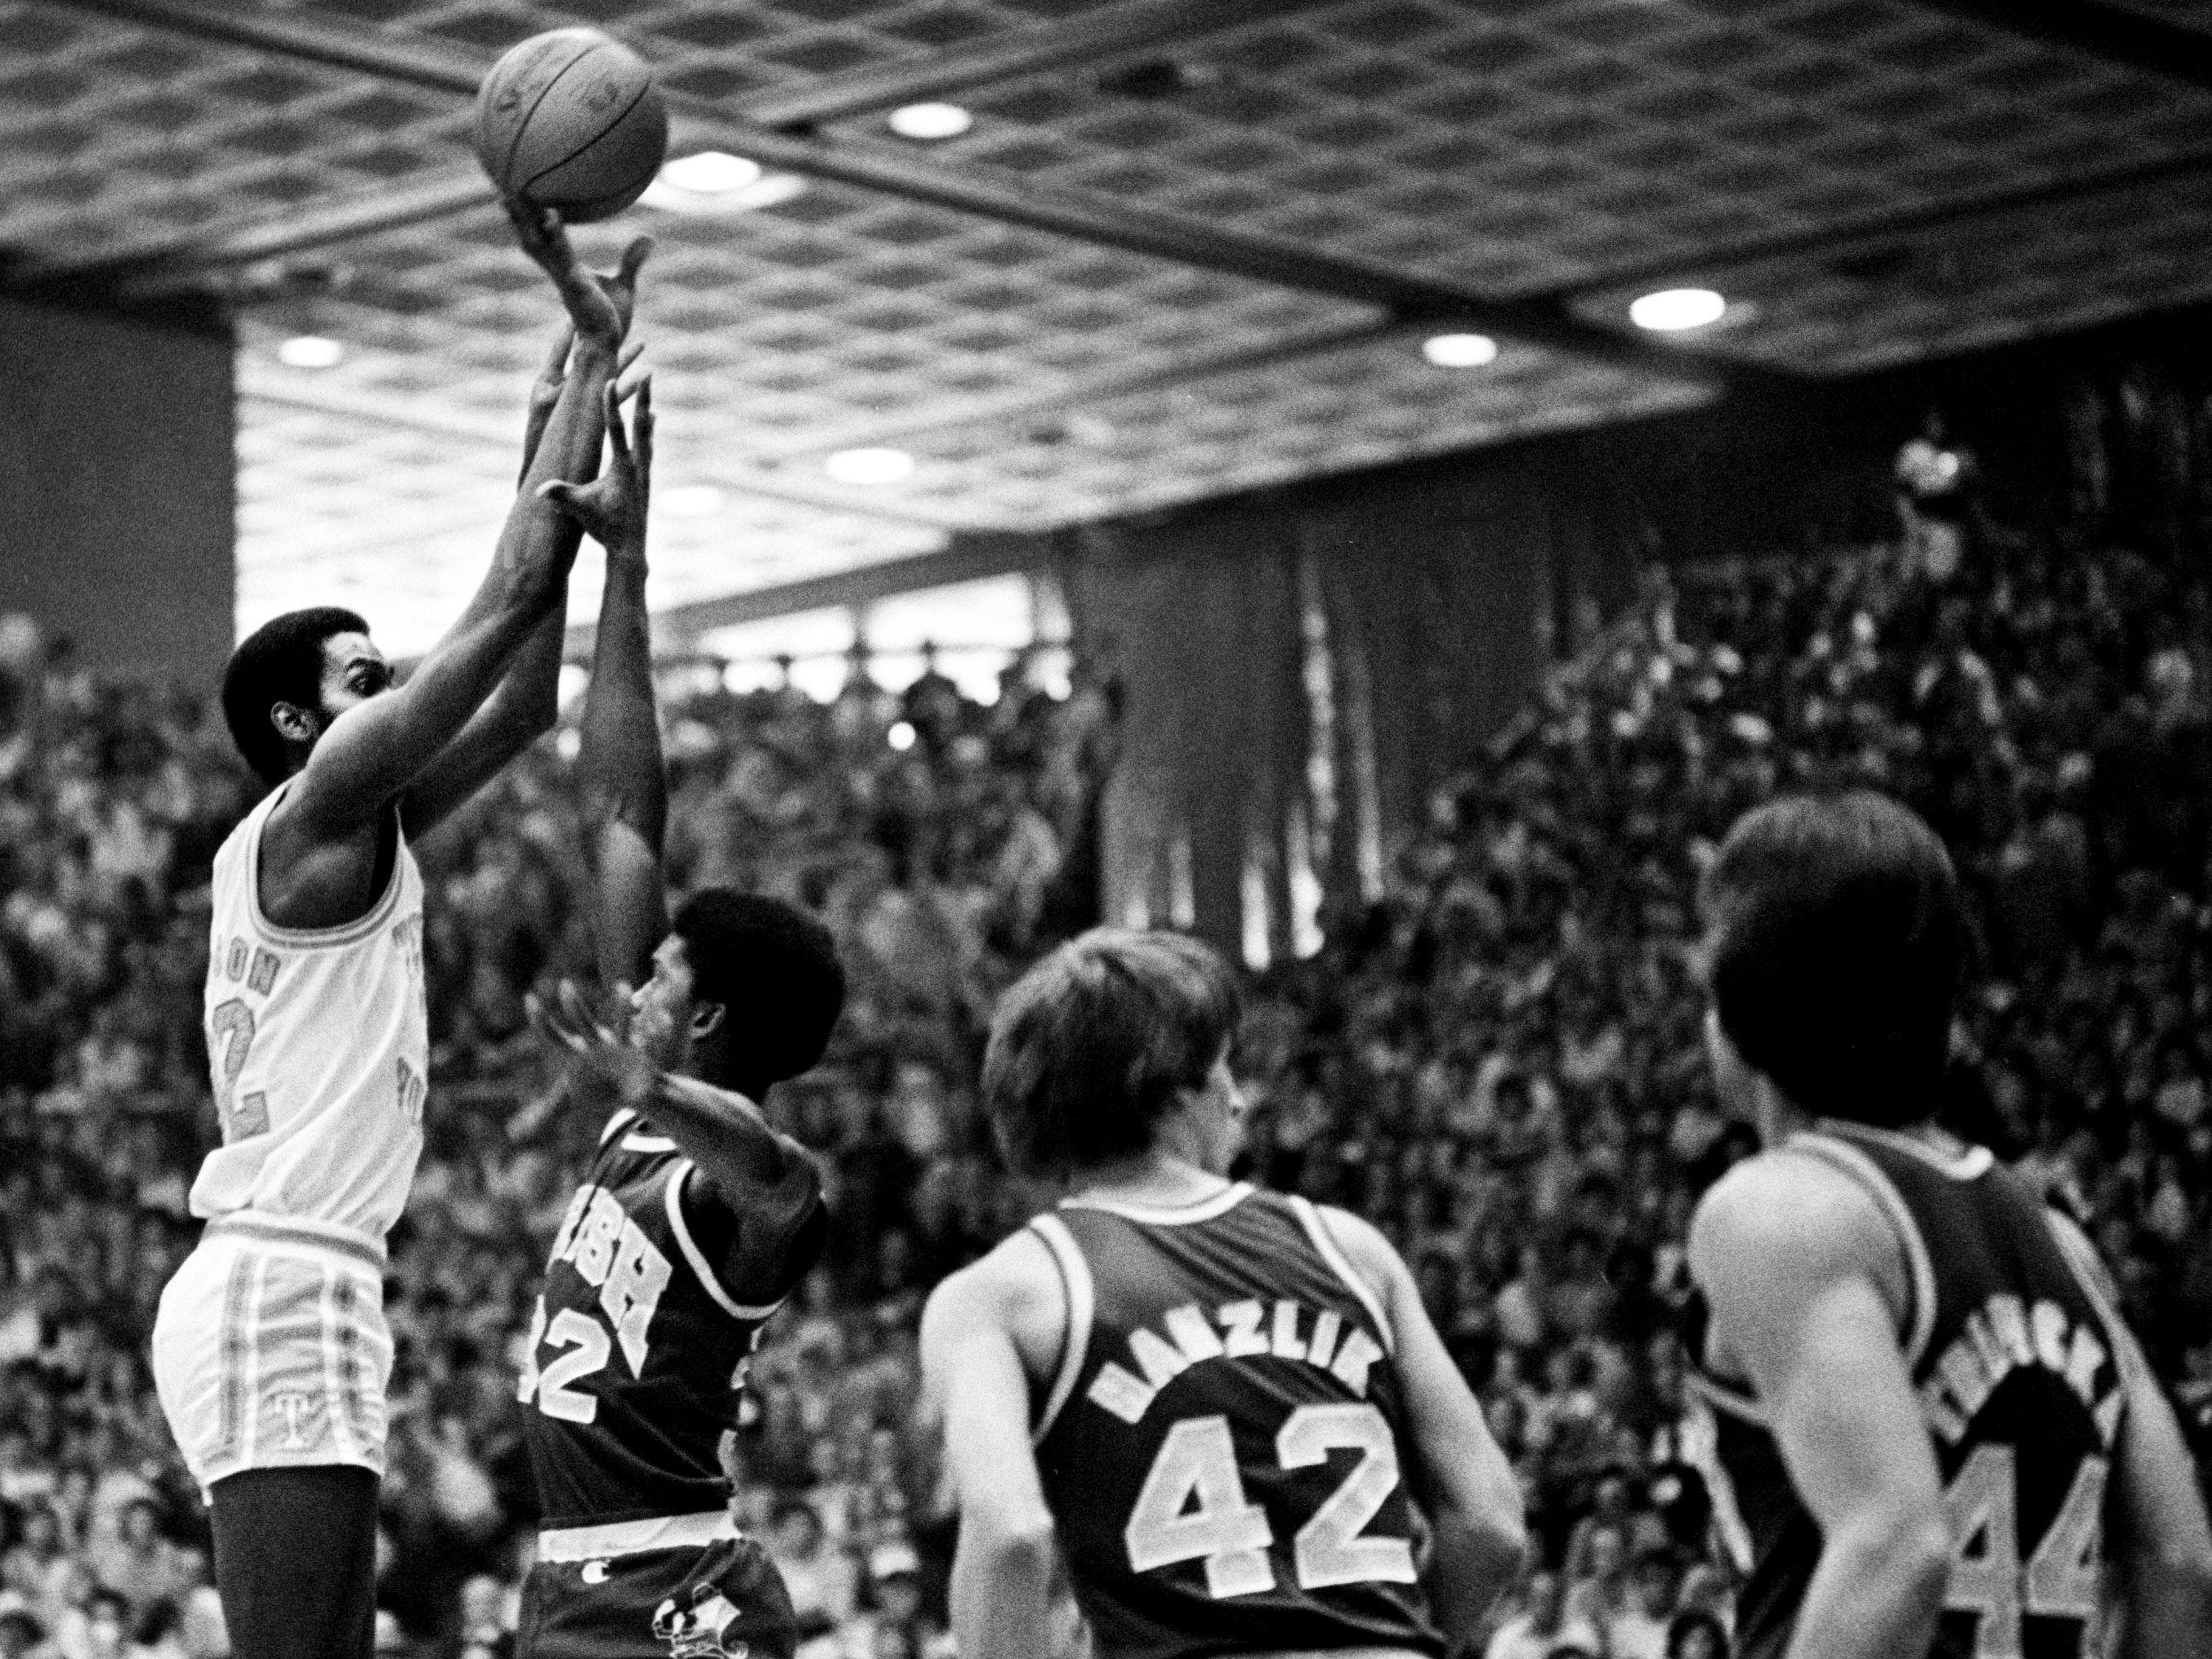 Tennessee junior Reggie Johnson, left, takes a shot against Notre Dame during the NCAA Mideast Regional tournament at MTSU's Murphy Center in Murfreesboro on March 11, 1979. Tennessee was knocked out the tournament with a 73-67 loss to Notre Dame.